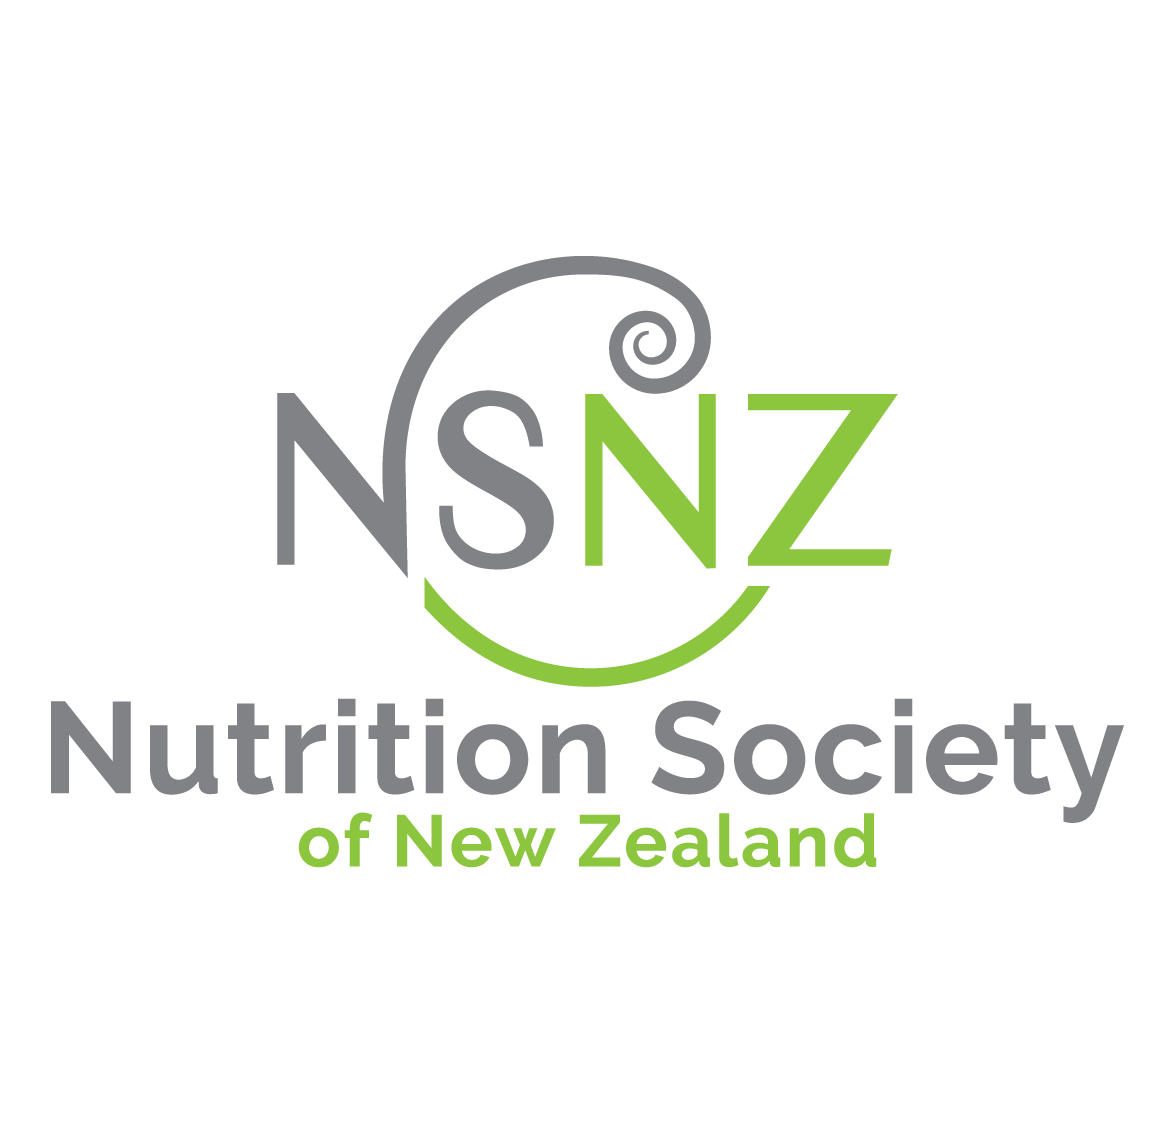 Nutrition Society of NZ